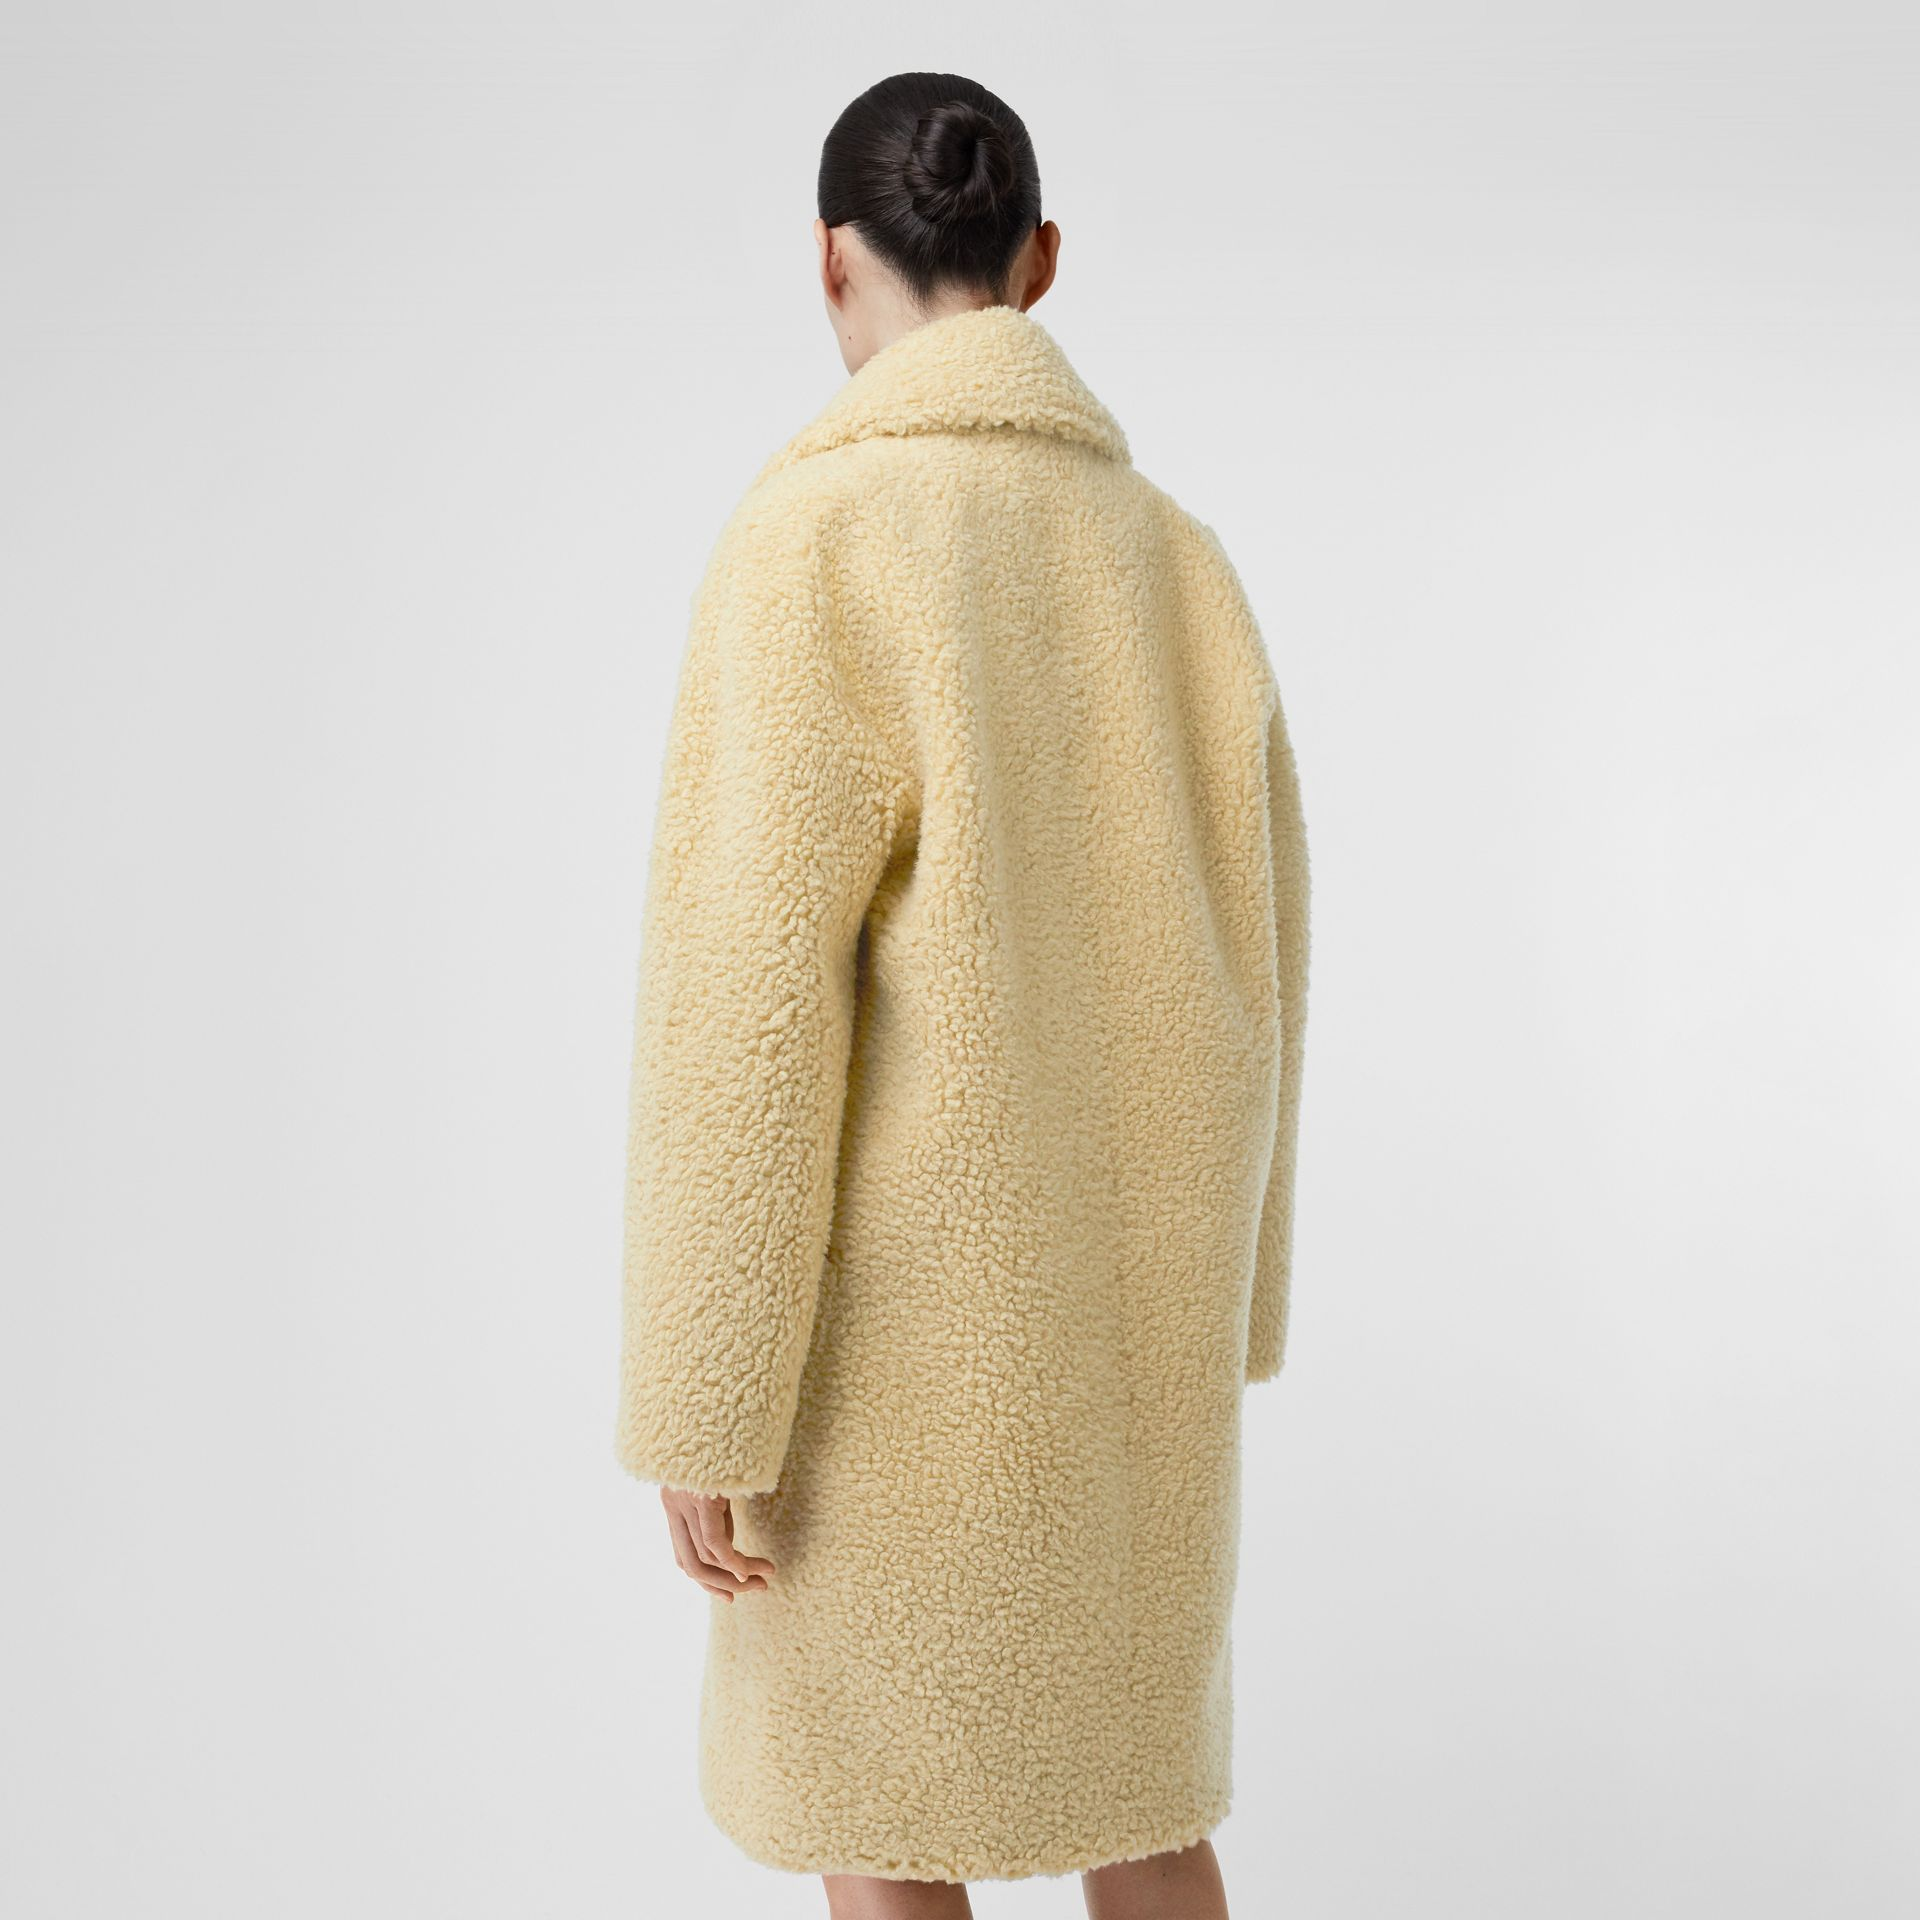 Faux Shearling Double-breasted Oversized Coat in Camomile - Women | Burberry - gallery image 2